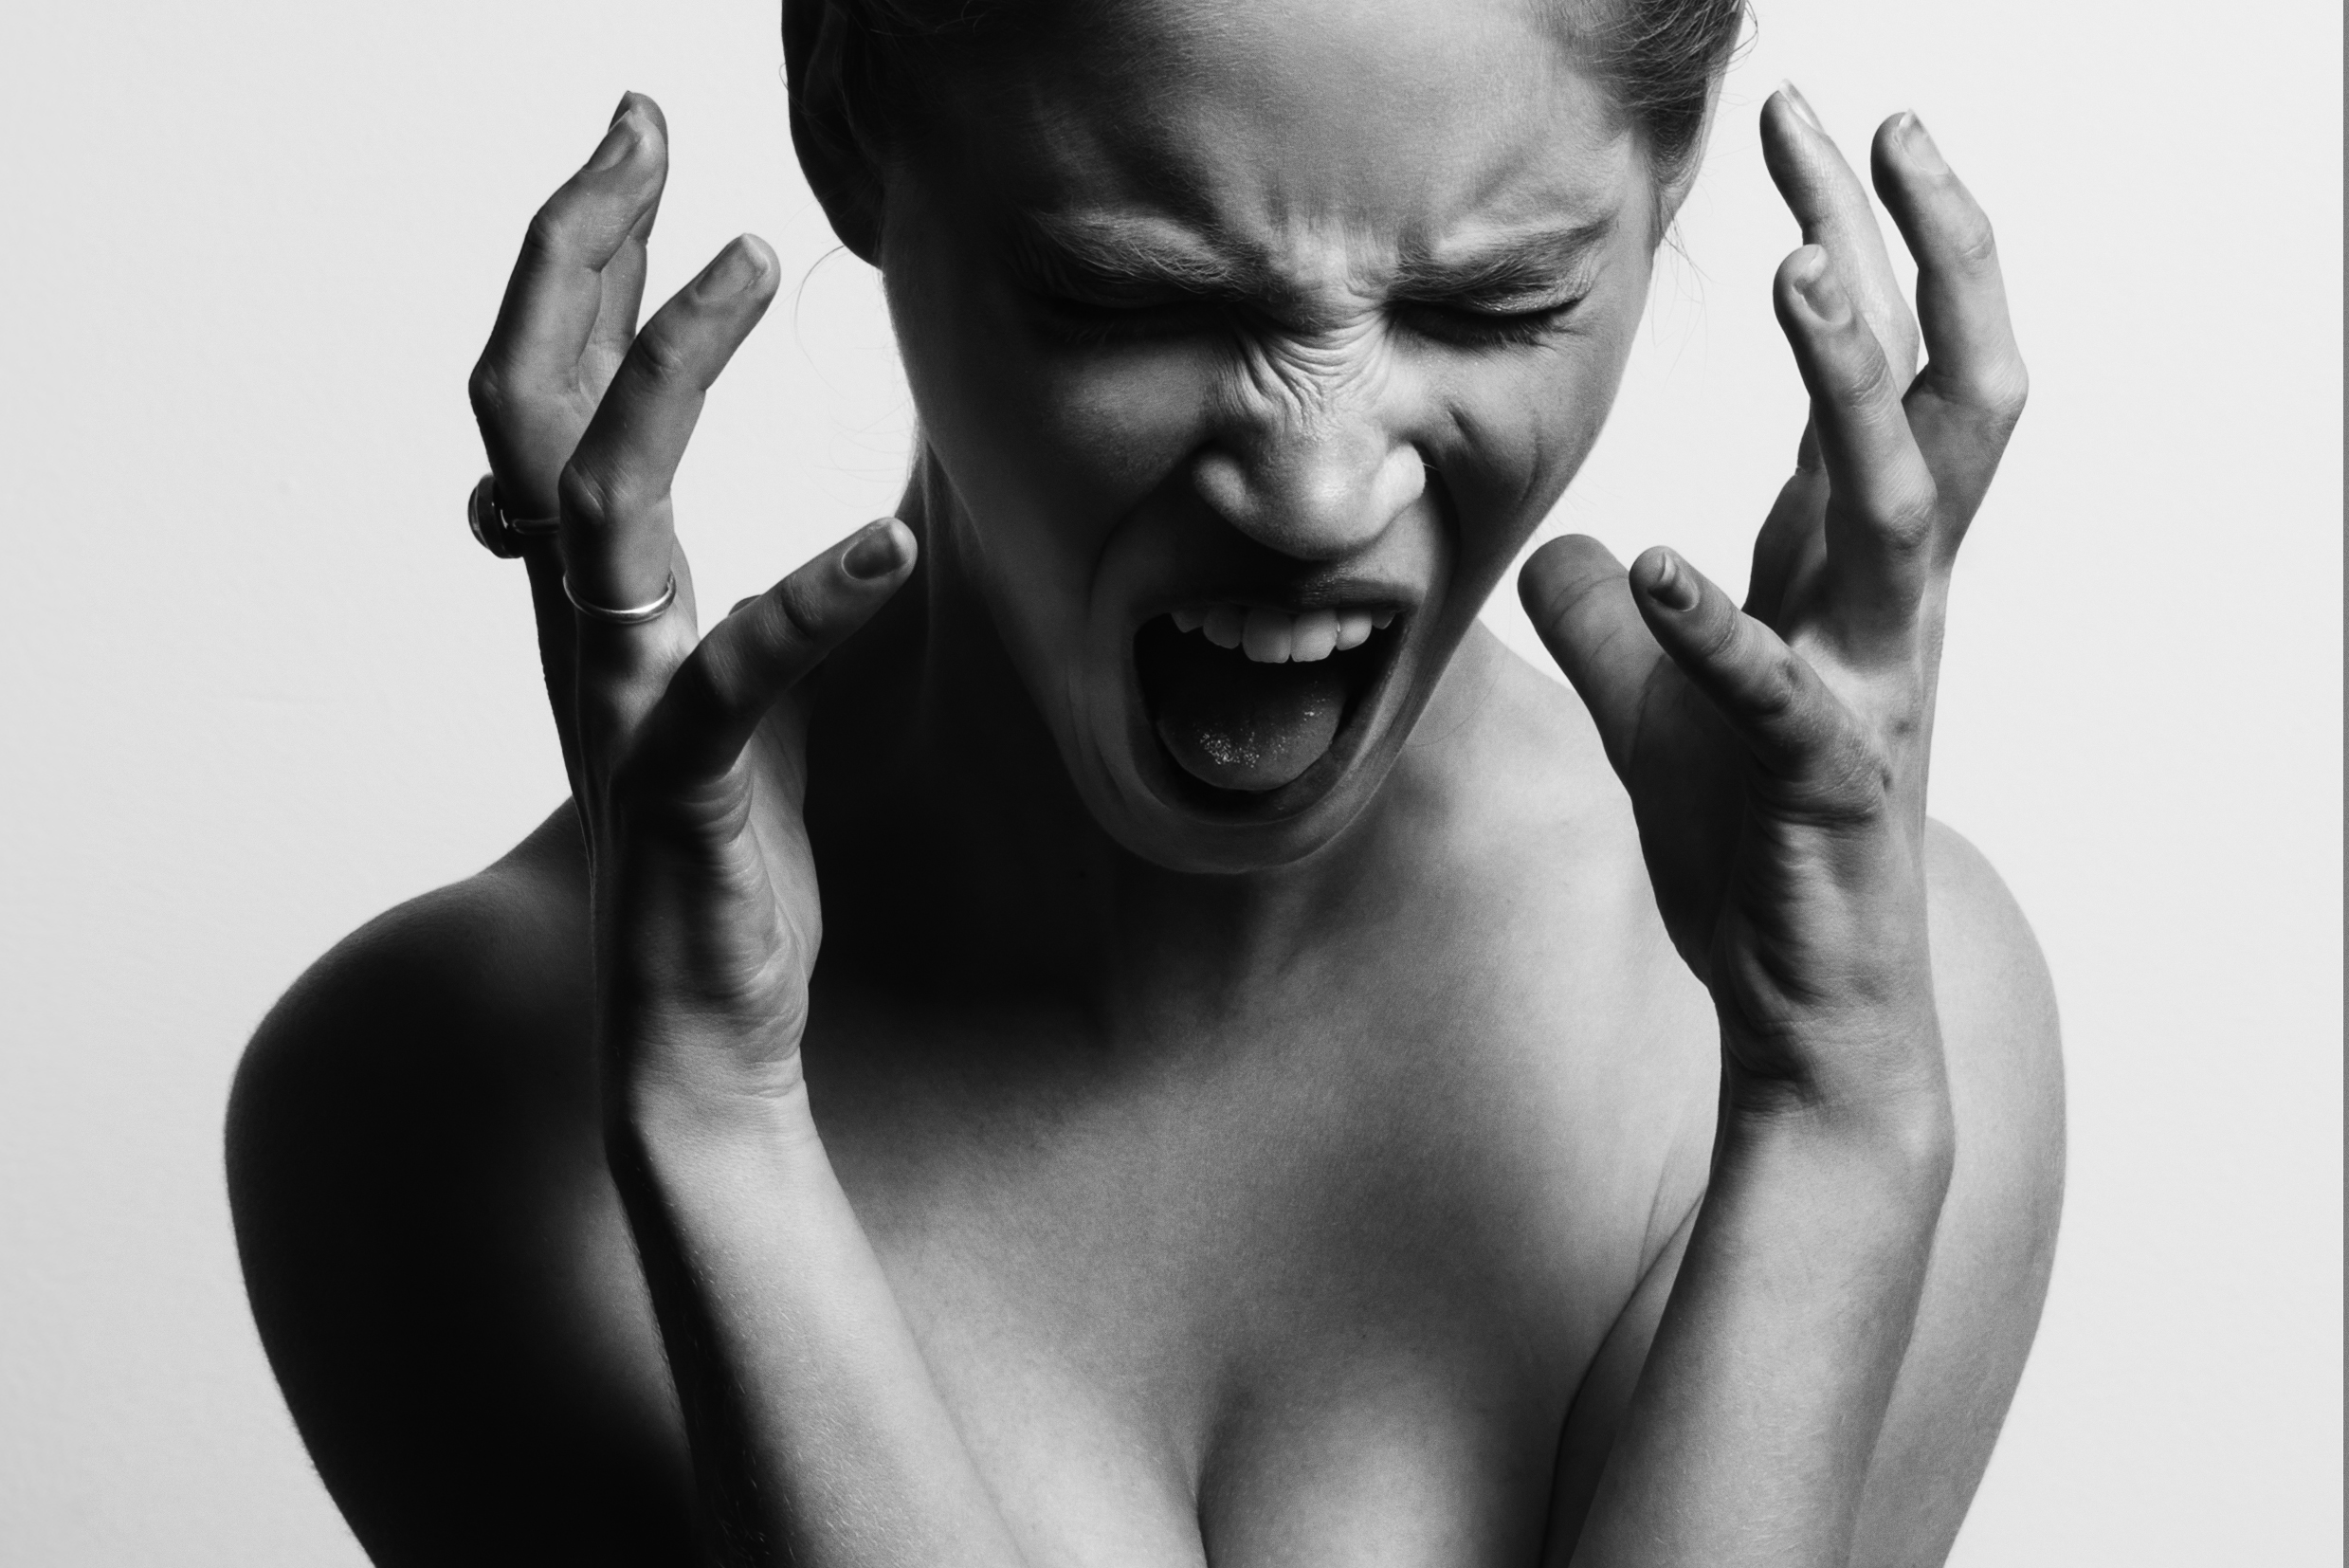 Screaming woman.